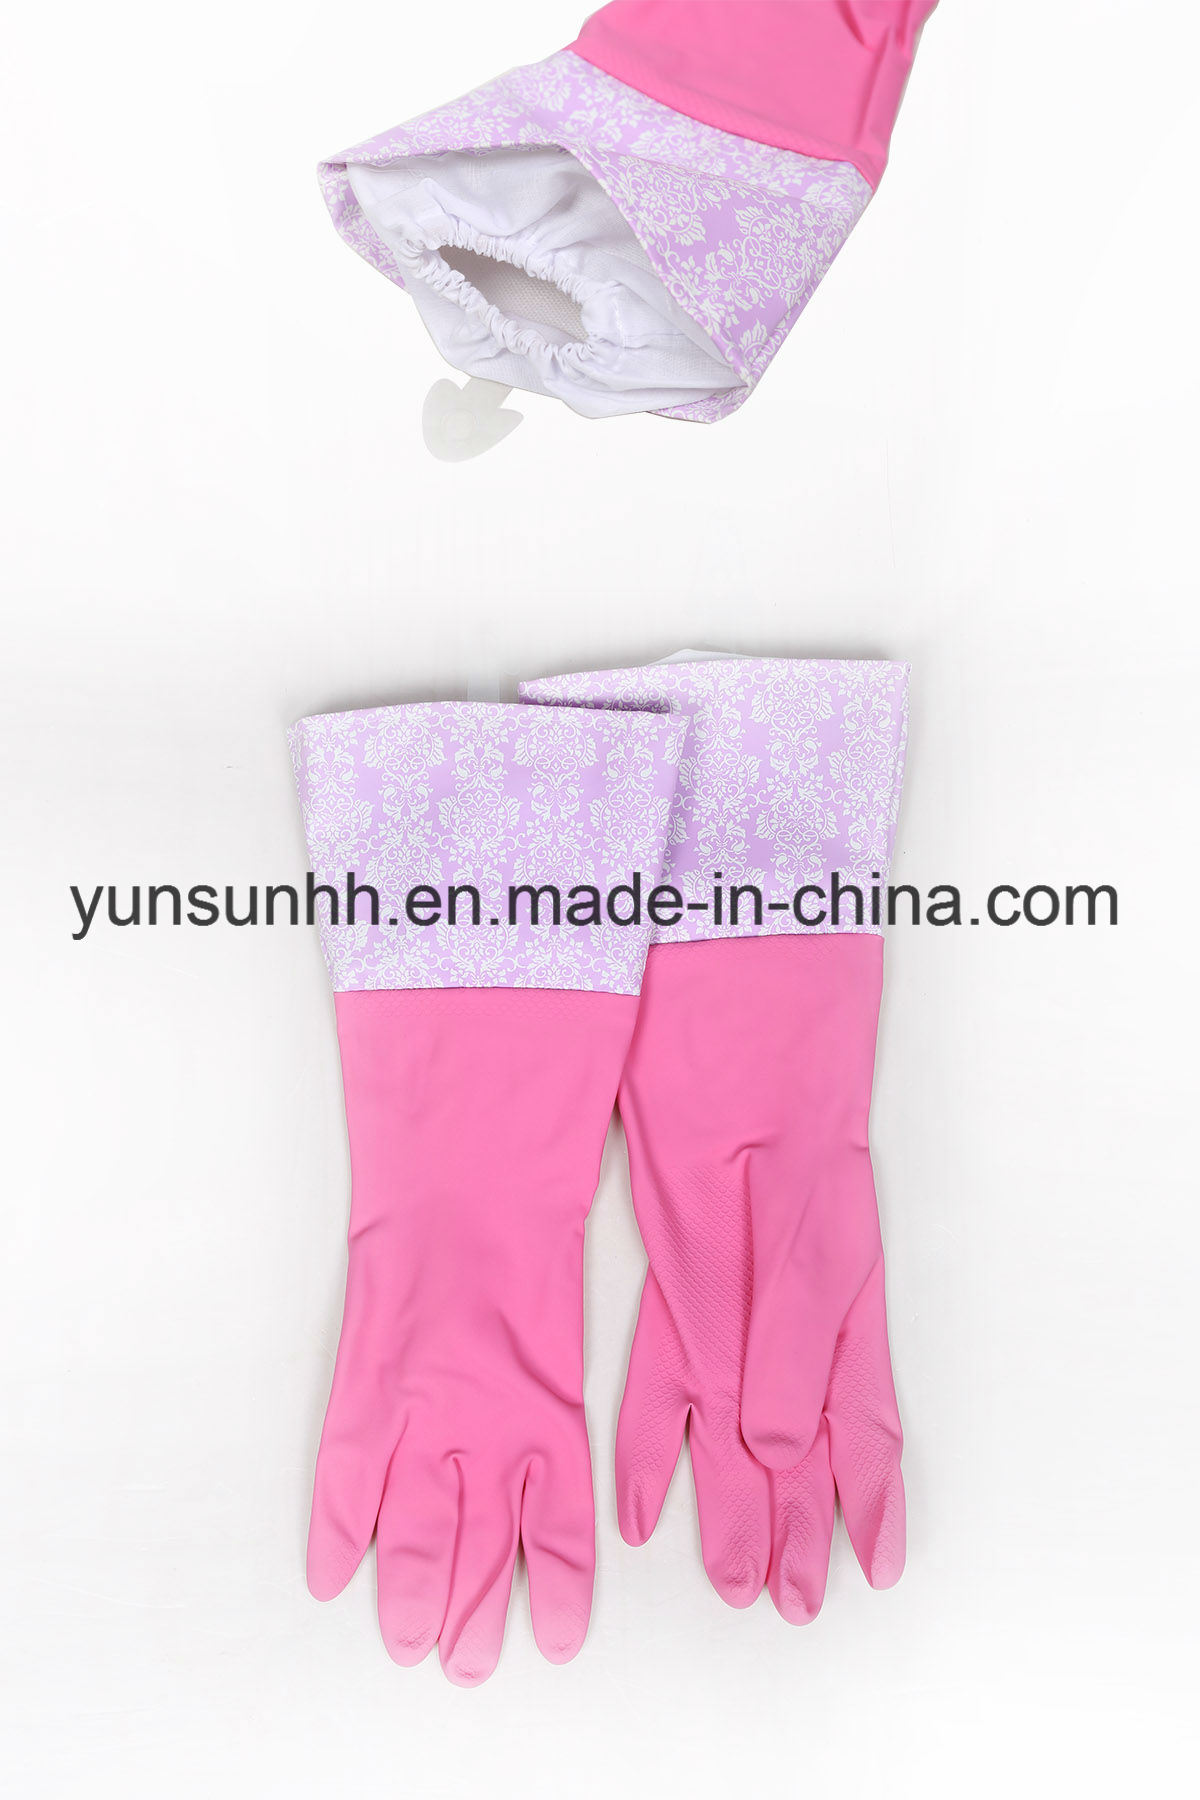 Long Cuff Rubber Household Gloves with Cotton Fibre Inside